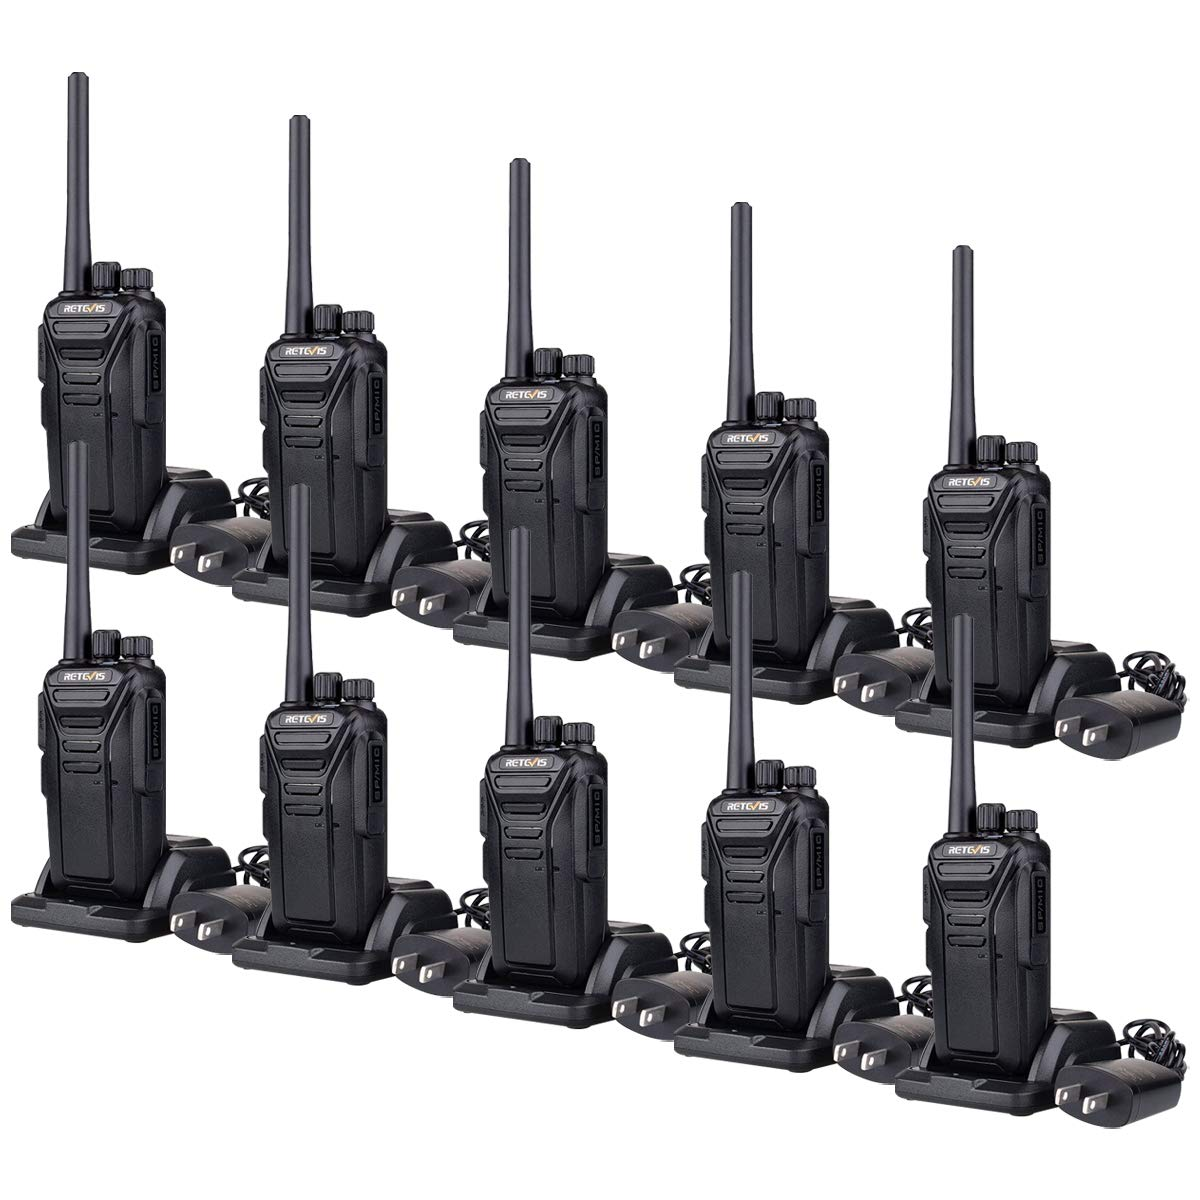 Retevis RT27 Two-Way Radios Rechargeable Long Range 2 Way Radio for Adults UHF FRS VOX Security Heavy Duty Walkie Talkies Black,10 Pack